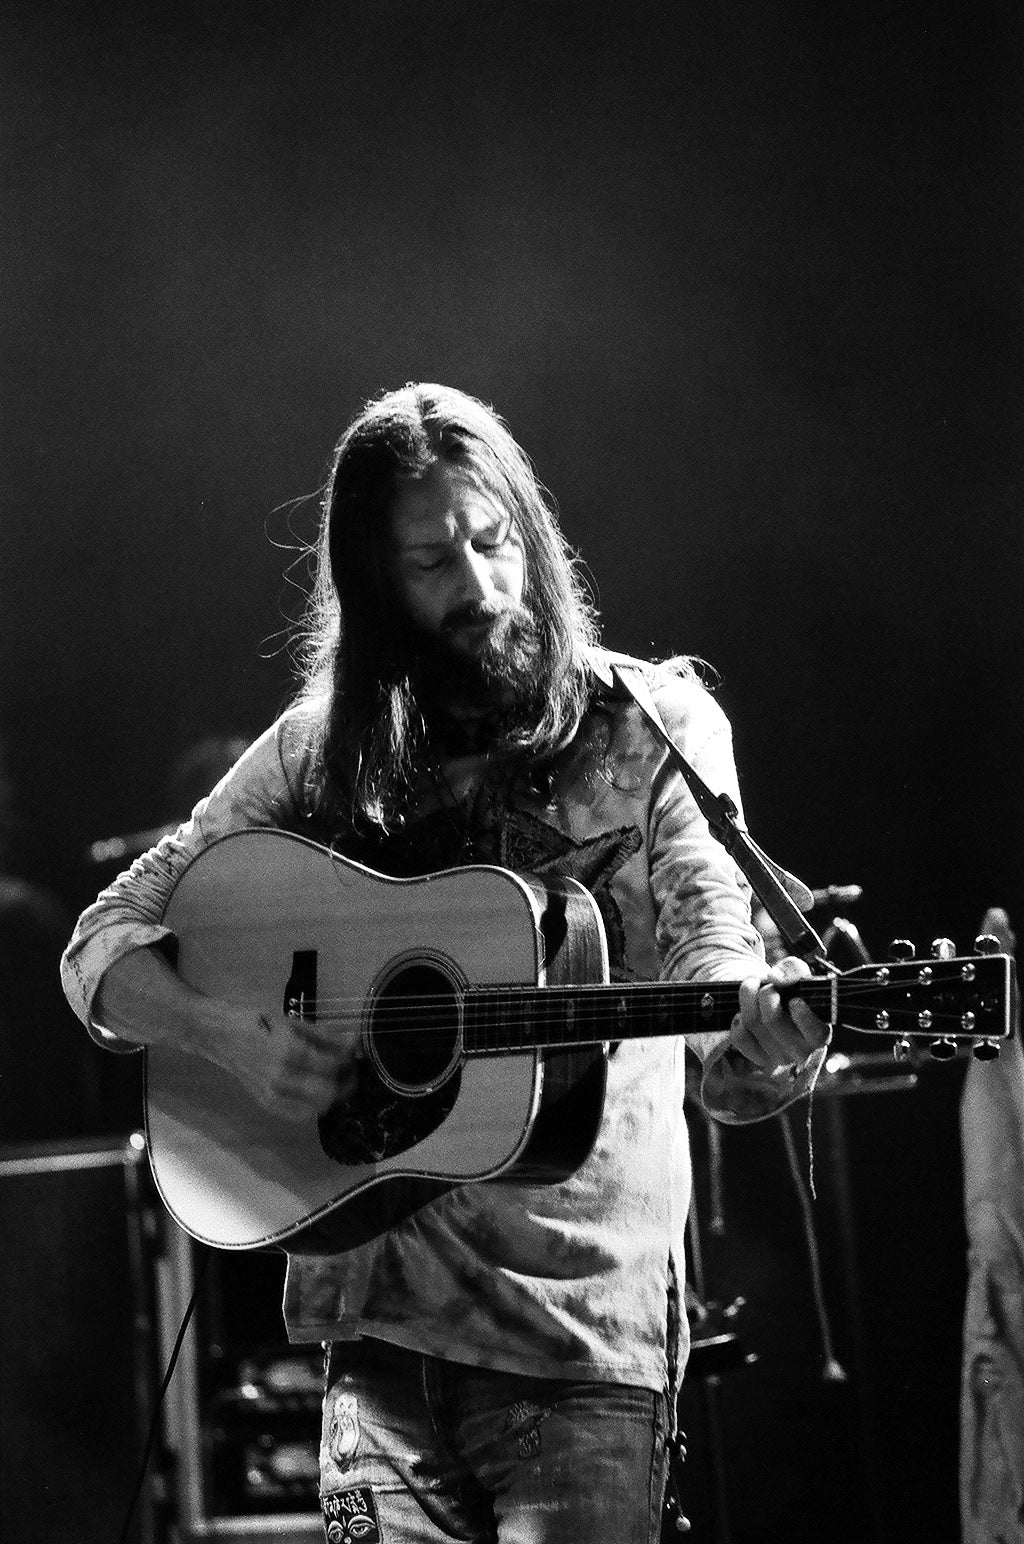 Chris Robinson (3) 8x10 loose print